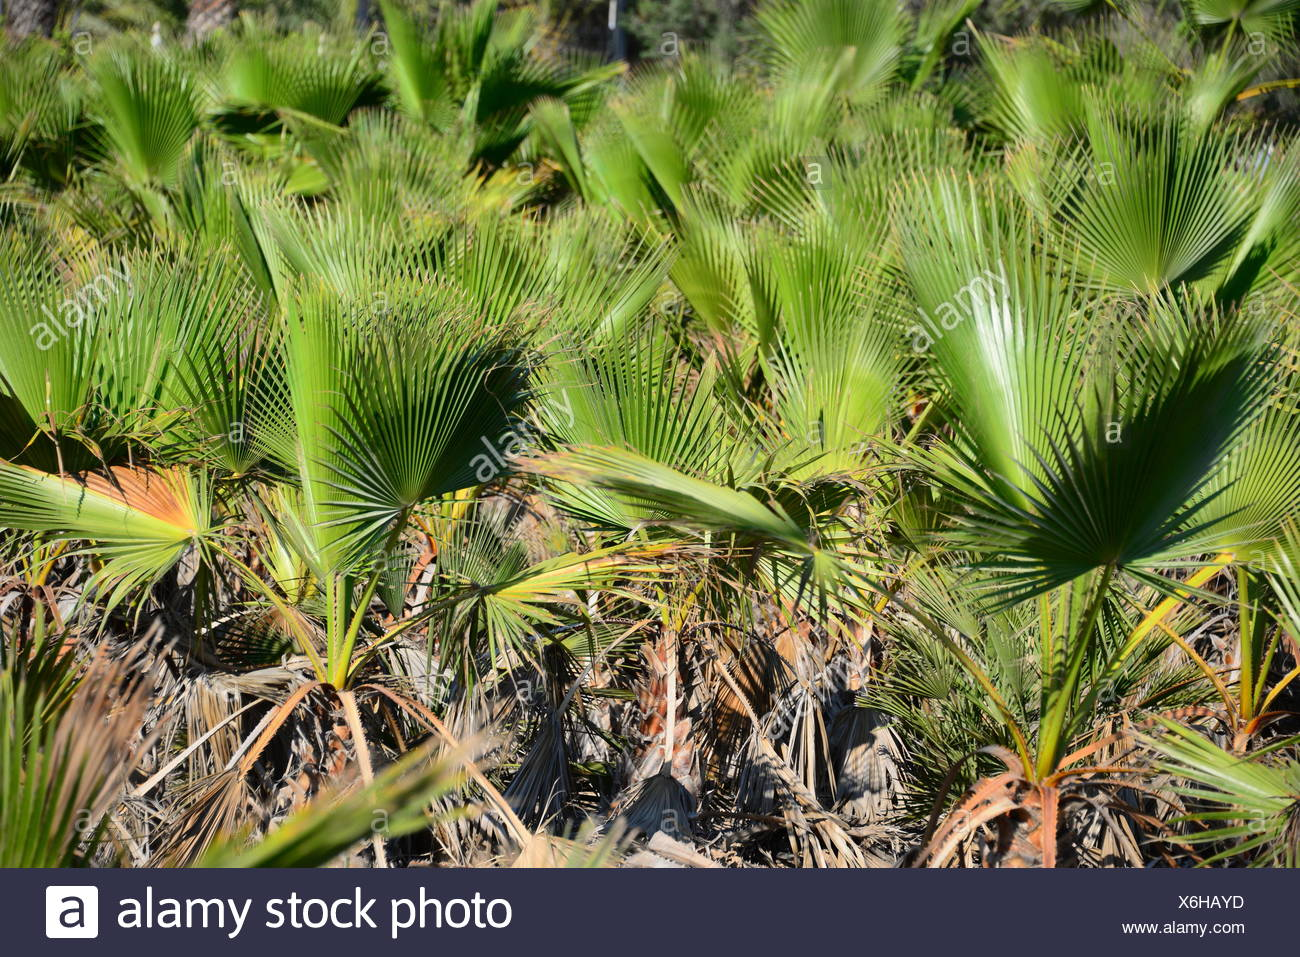 Palmenblatter Palmenblatt Stock Photo 279435617 Alamy